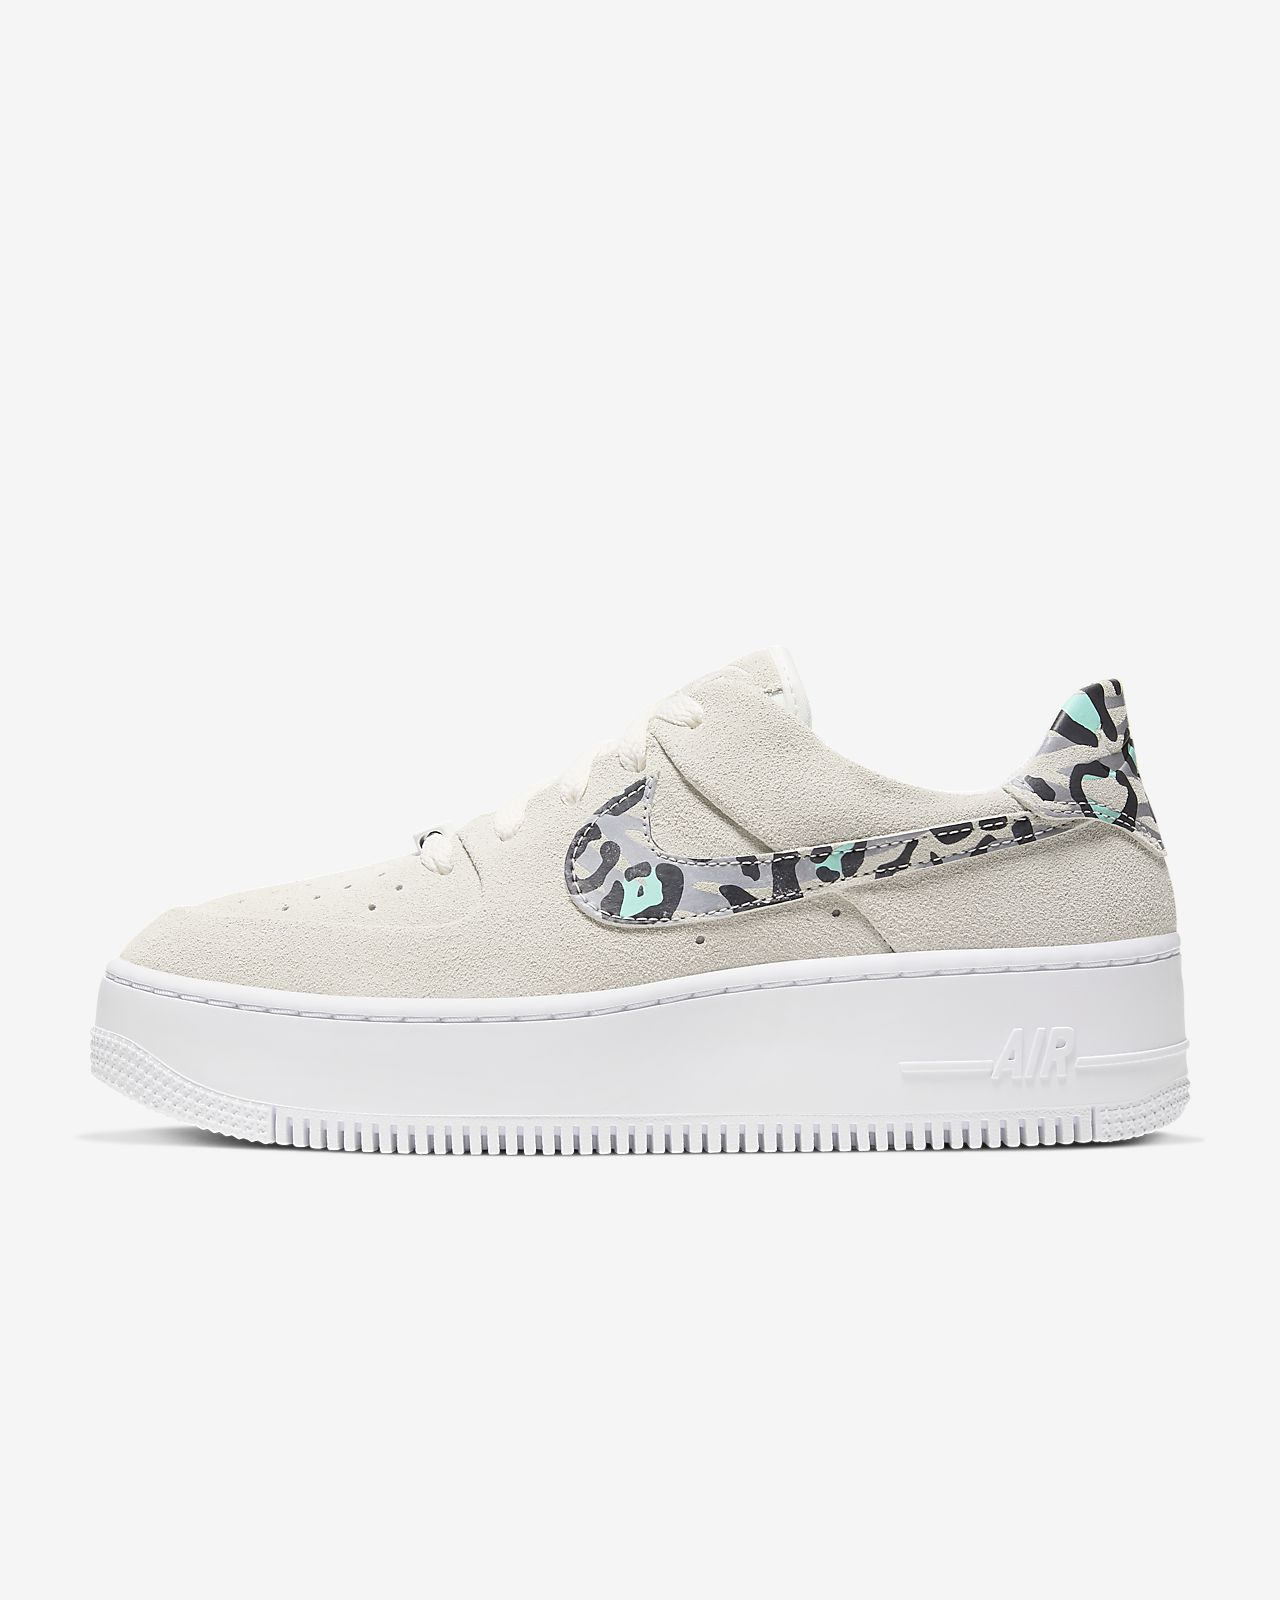 Chaussure Nike Air Force 1 Sage Low pour Femme. Nike CH